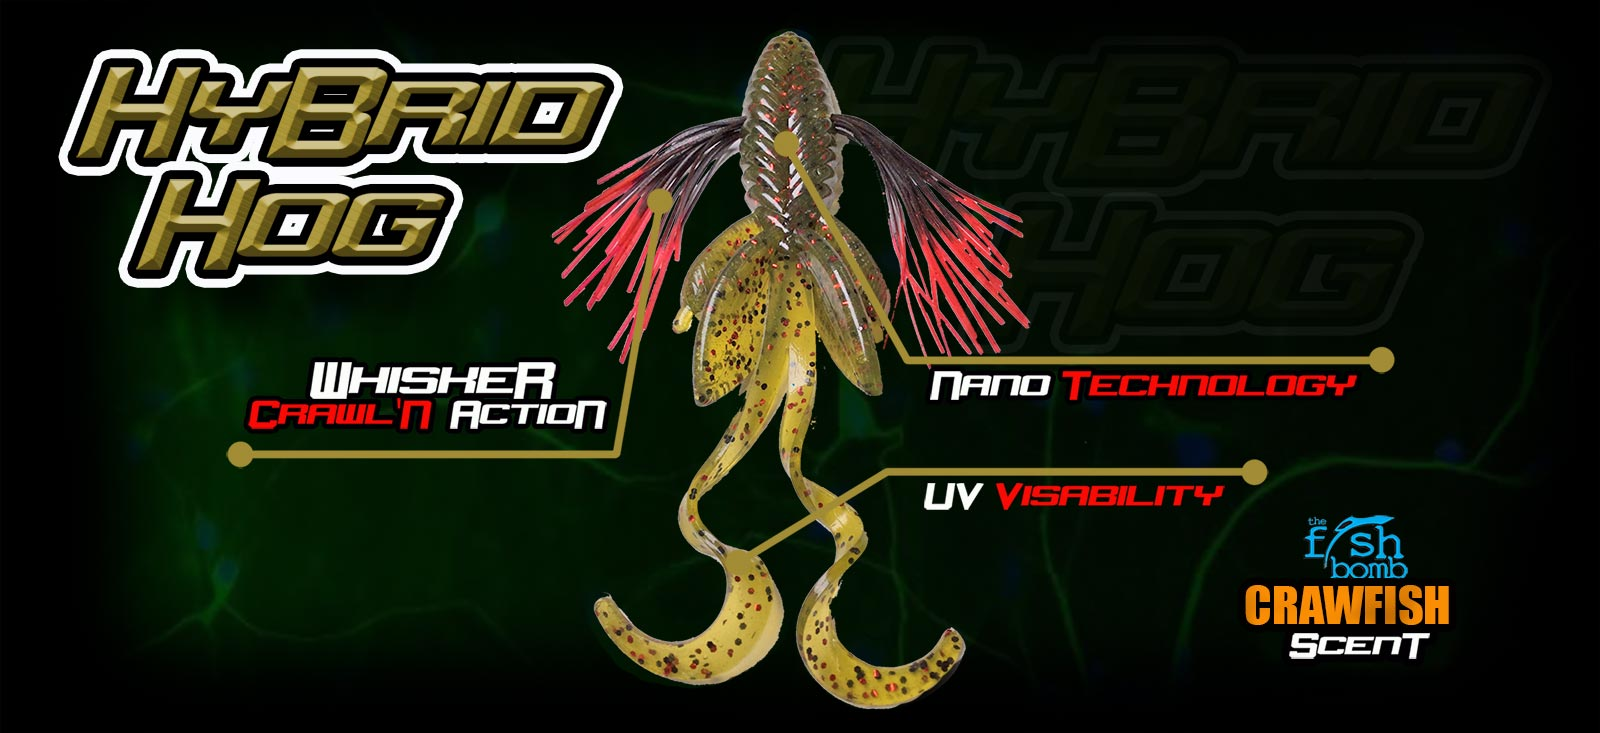 HyBridHog UV Bass Bait